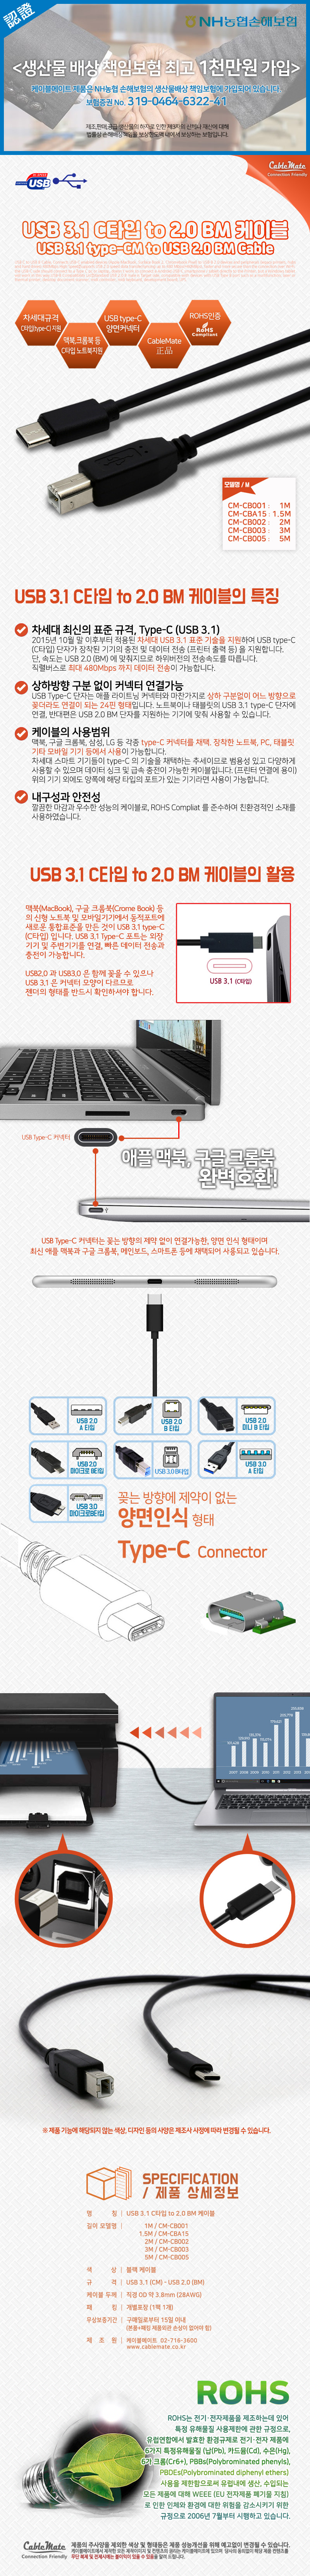 CABLEMATE USB 2.0 Type C to Type B 케이블 (CM-CB002, 2m)